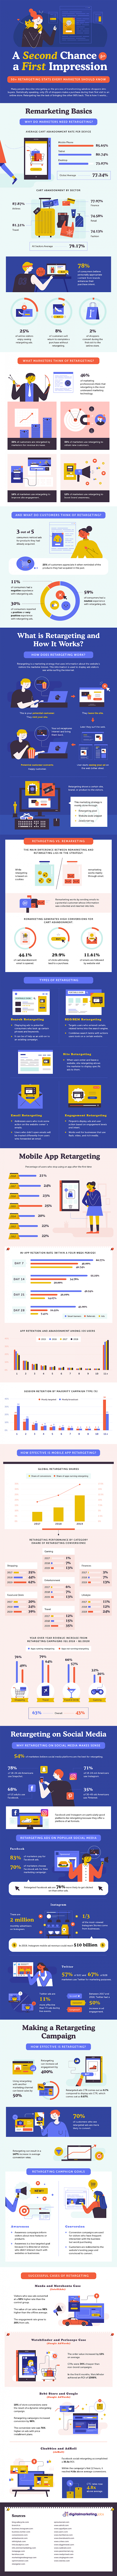 50+ Re-targeting Statistics Every Marketer Should Know in 2020 #infographic